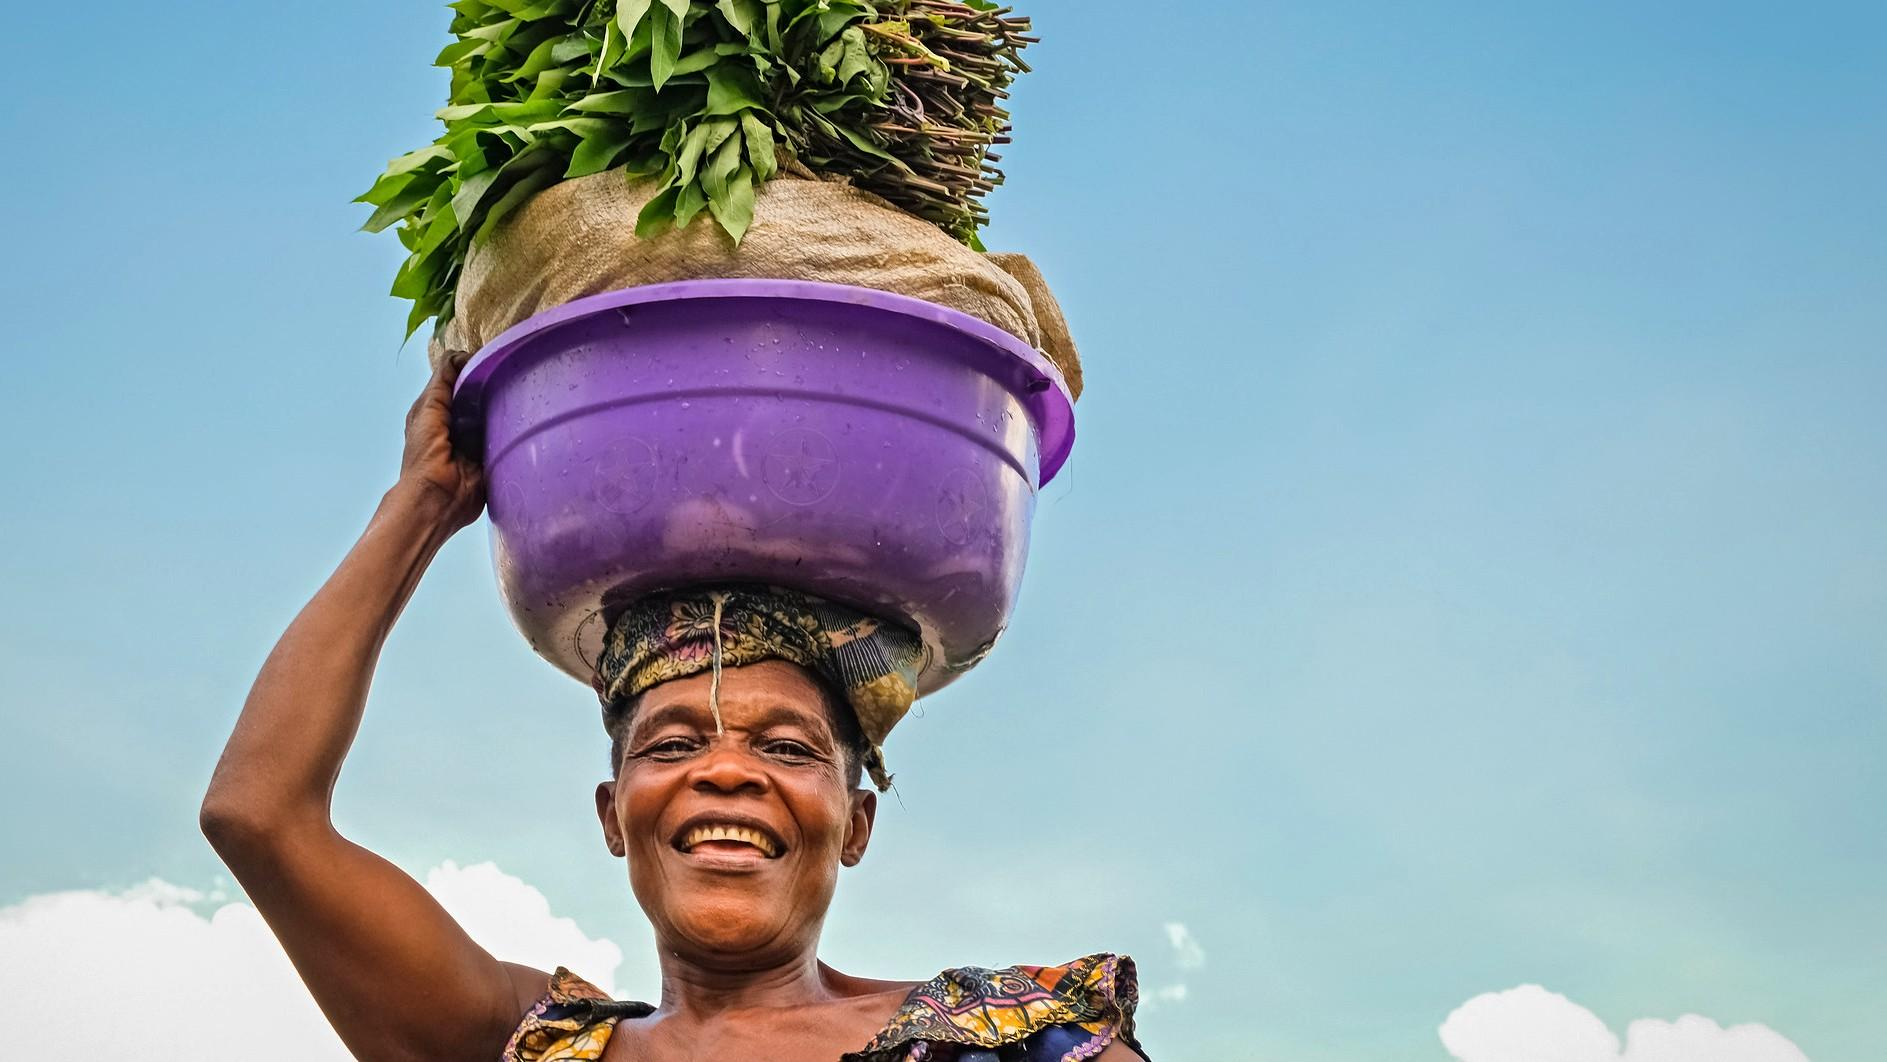 Savings groups can tackle financial precarity in Goma's woman-headed households